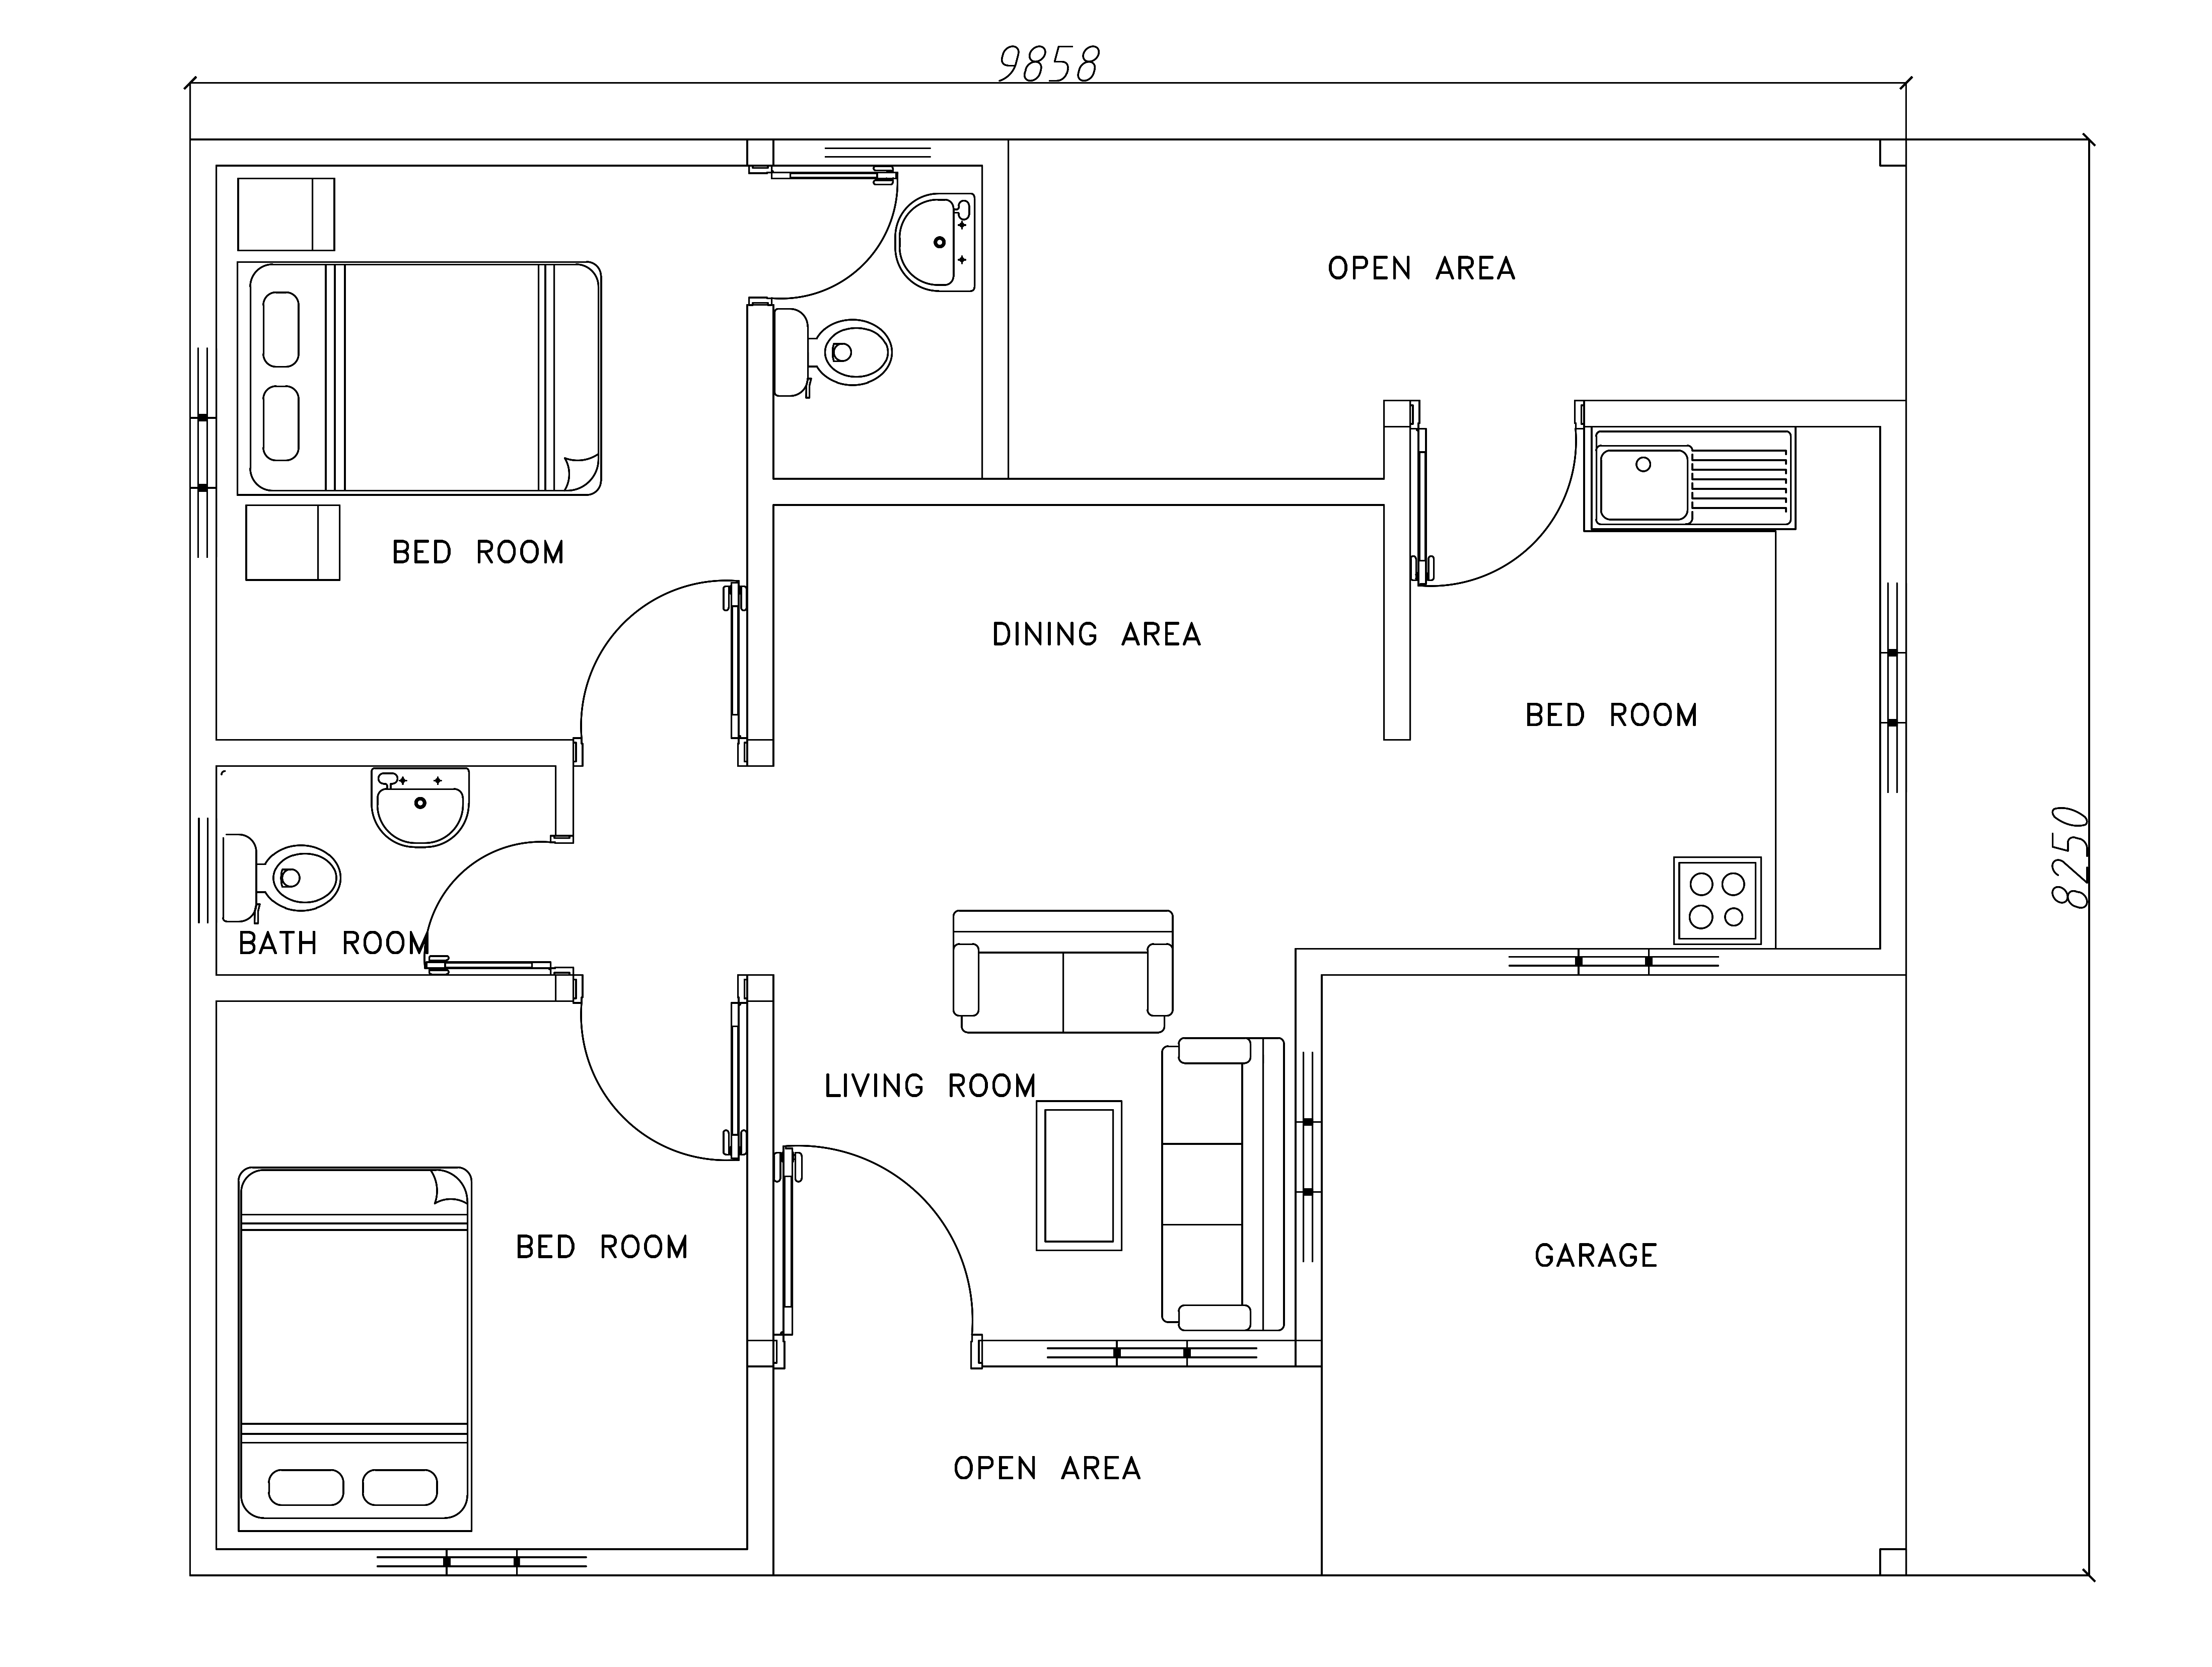 House plans cad files free for House plan cad file